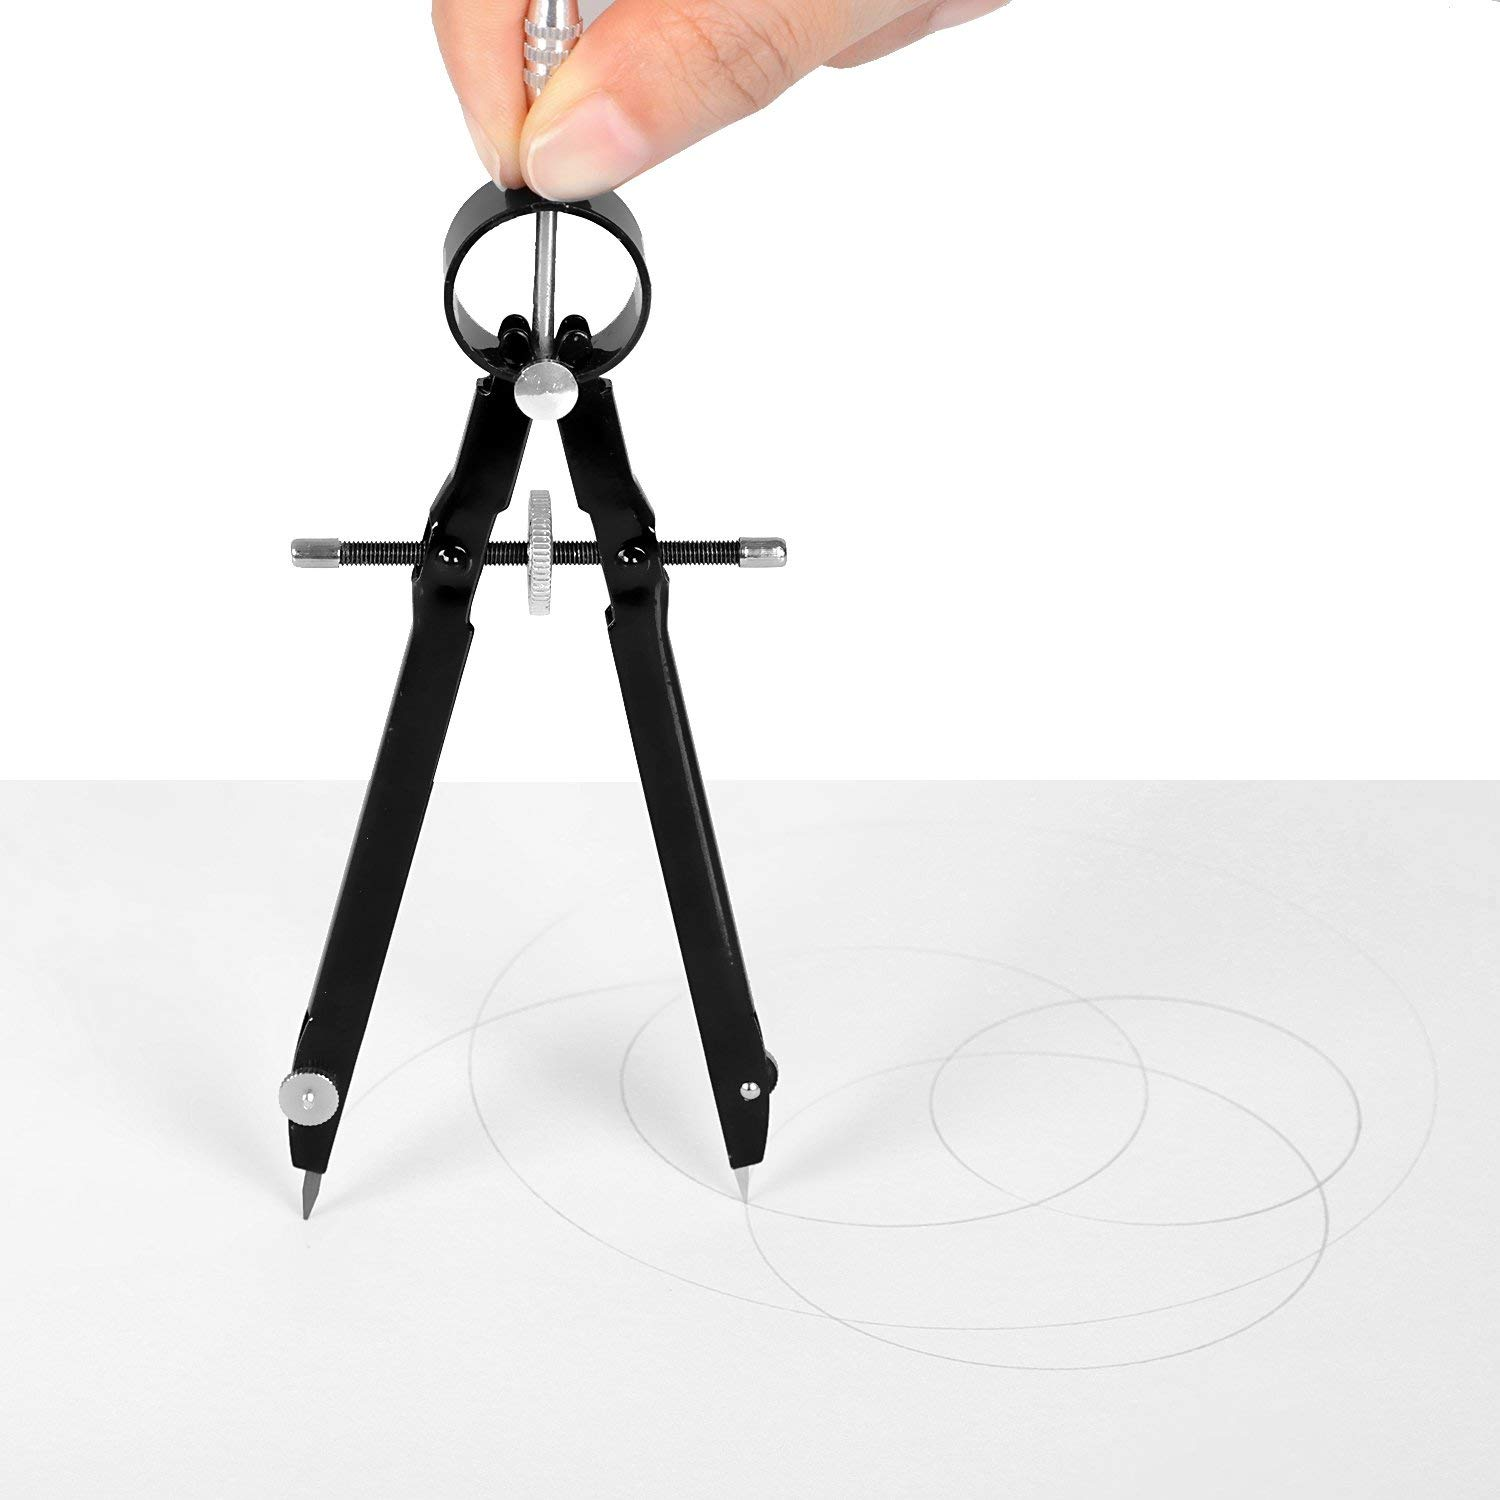 Professional Compass, Compass Geometry Set with Lock, Math and Precision Compass, Metal and Durable for Solid and Plane Precis